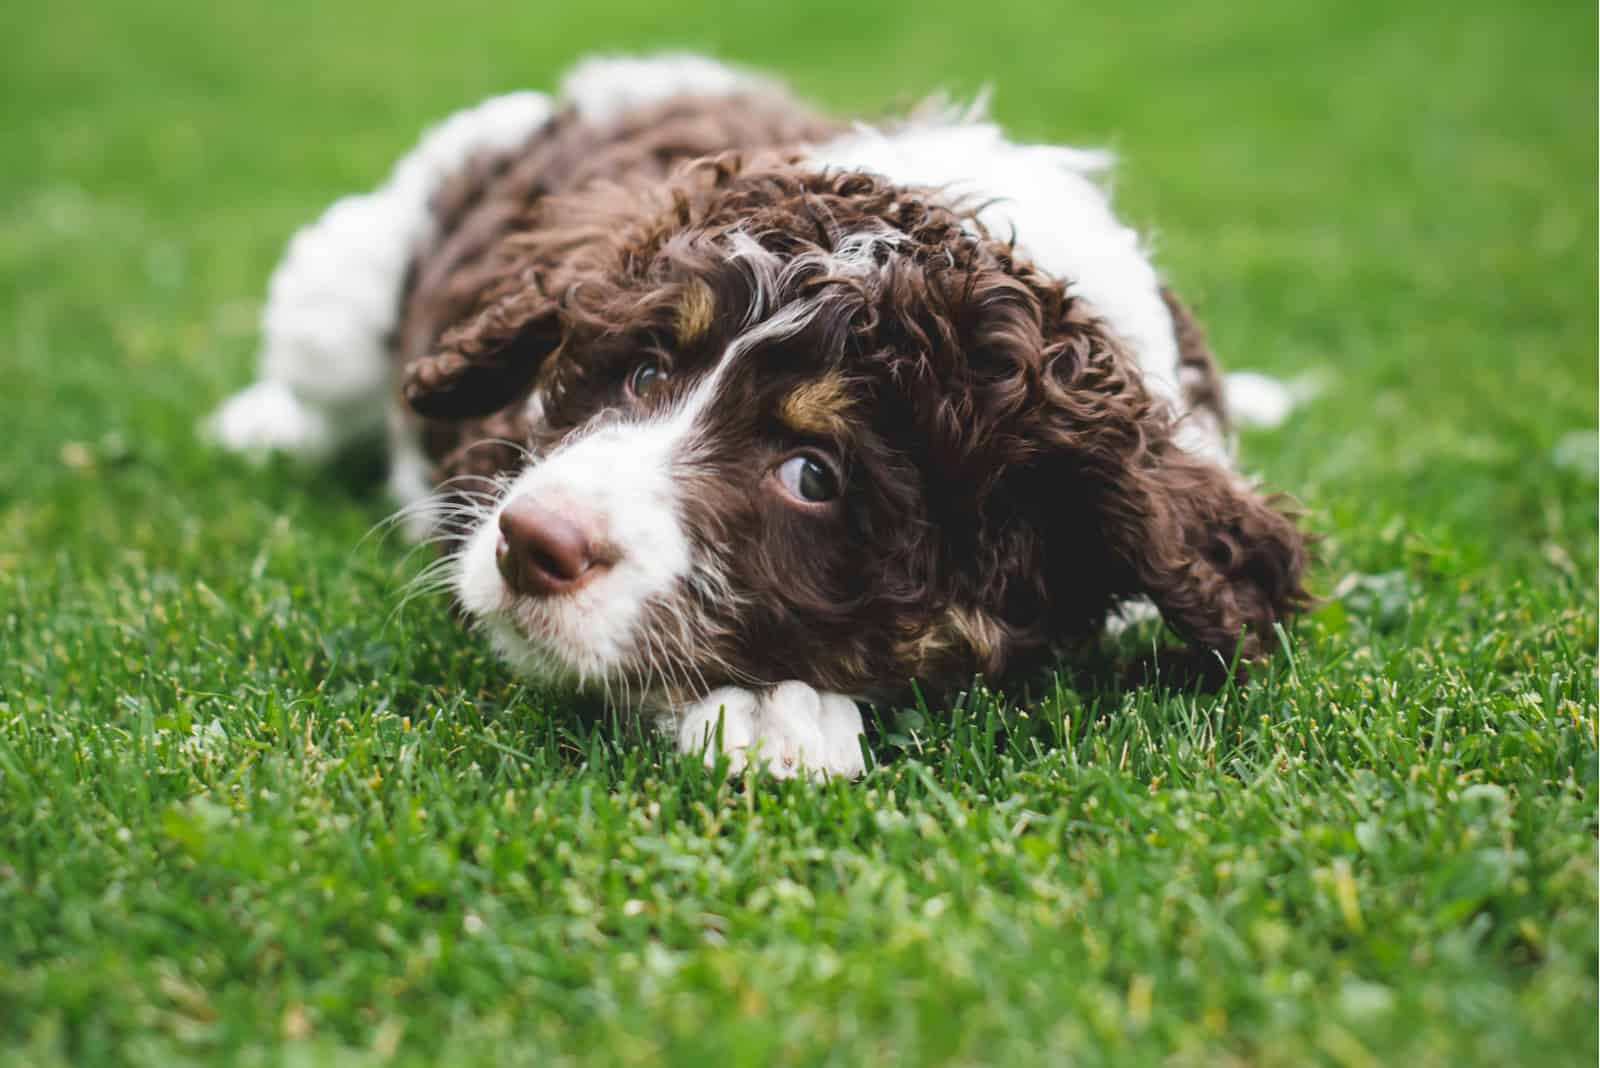 Adorable bernedoodle puppy laying on the grass outside